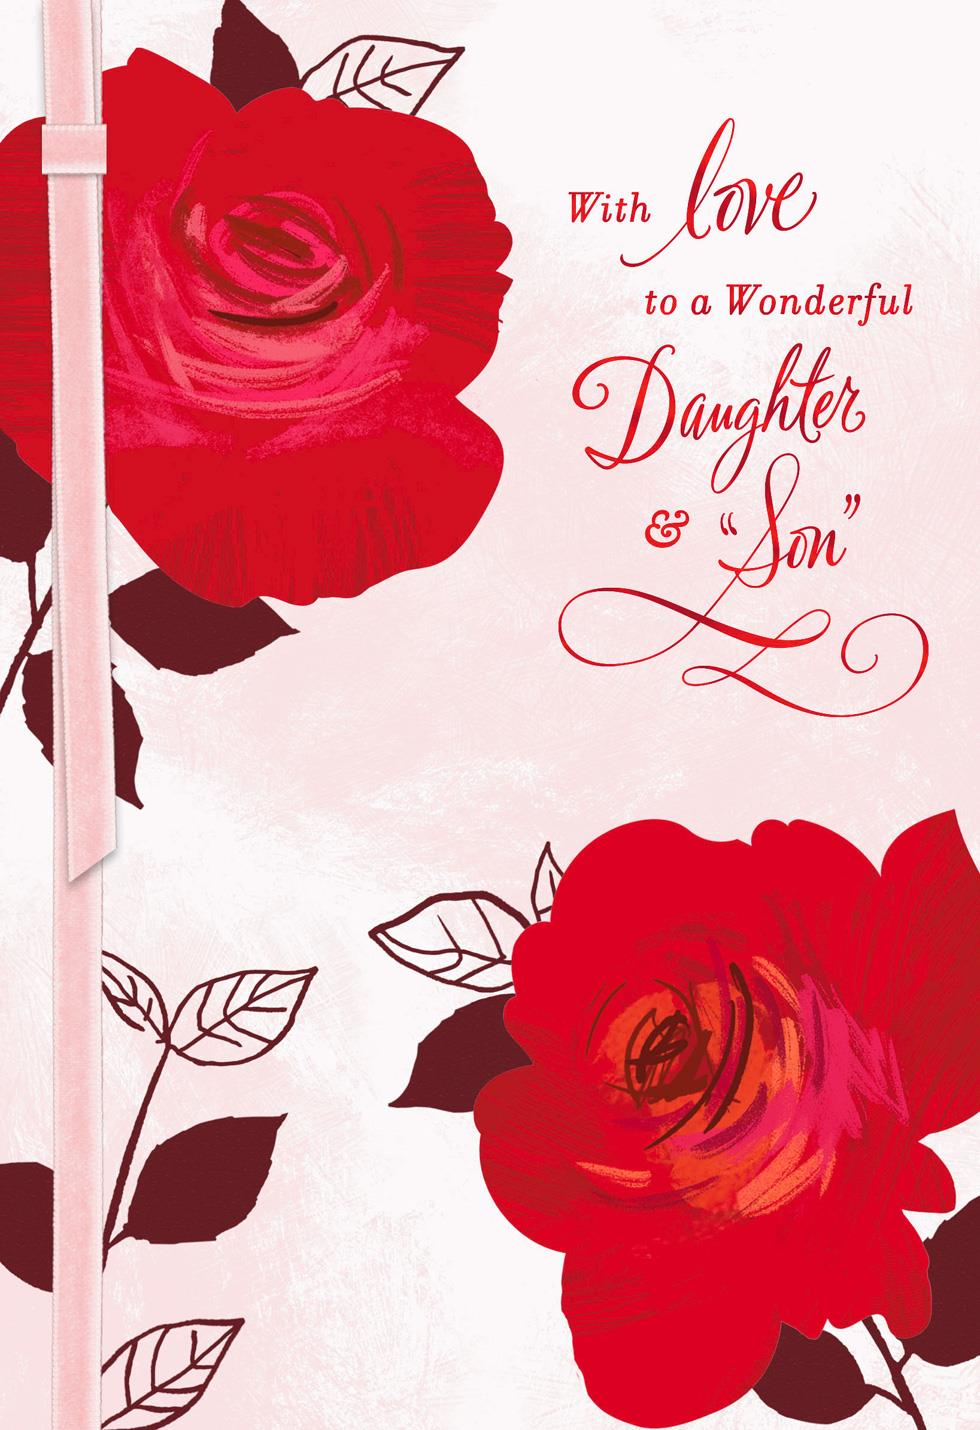 Two Roses Valentineu0027s Day Card For Daughter And Son In Law